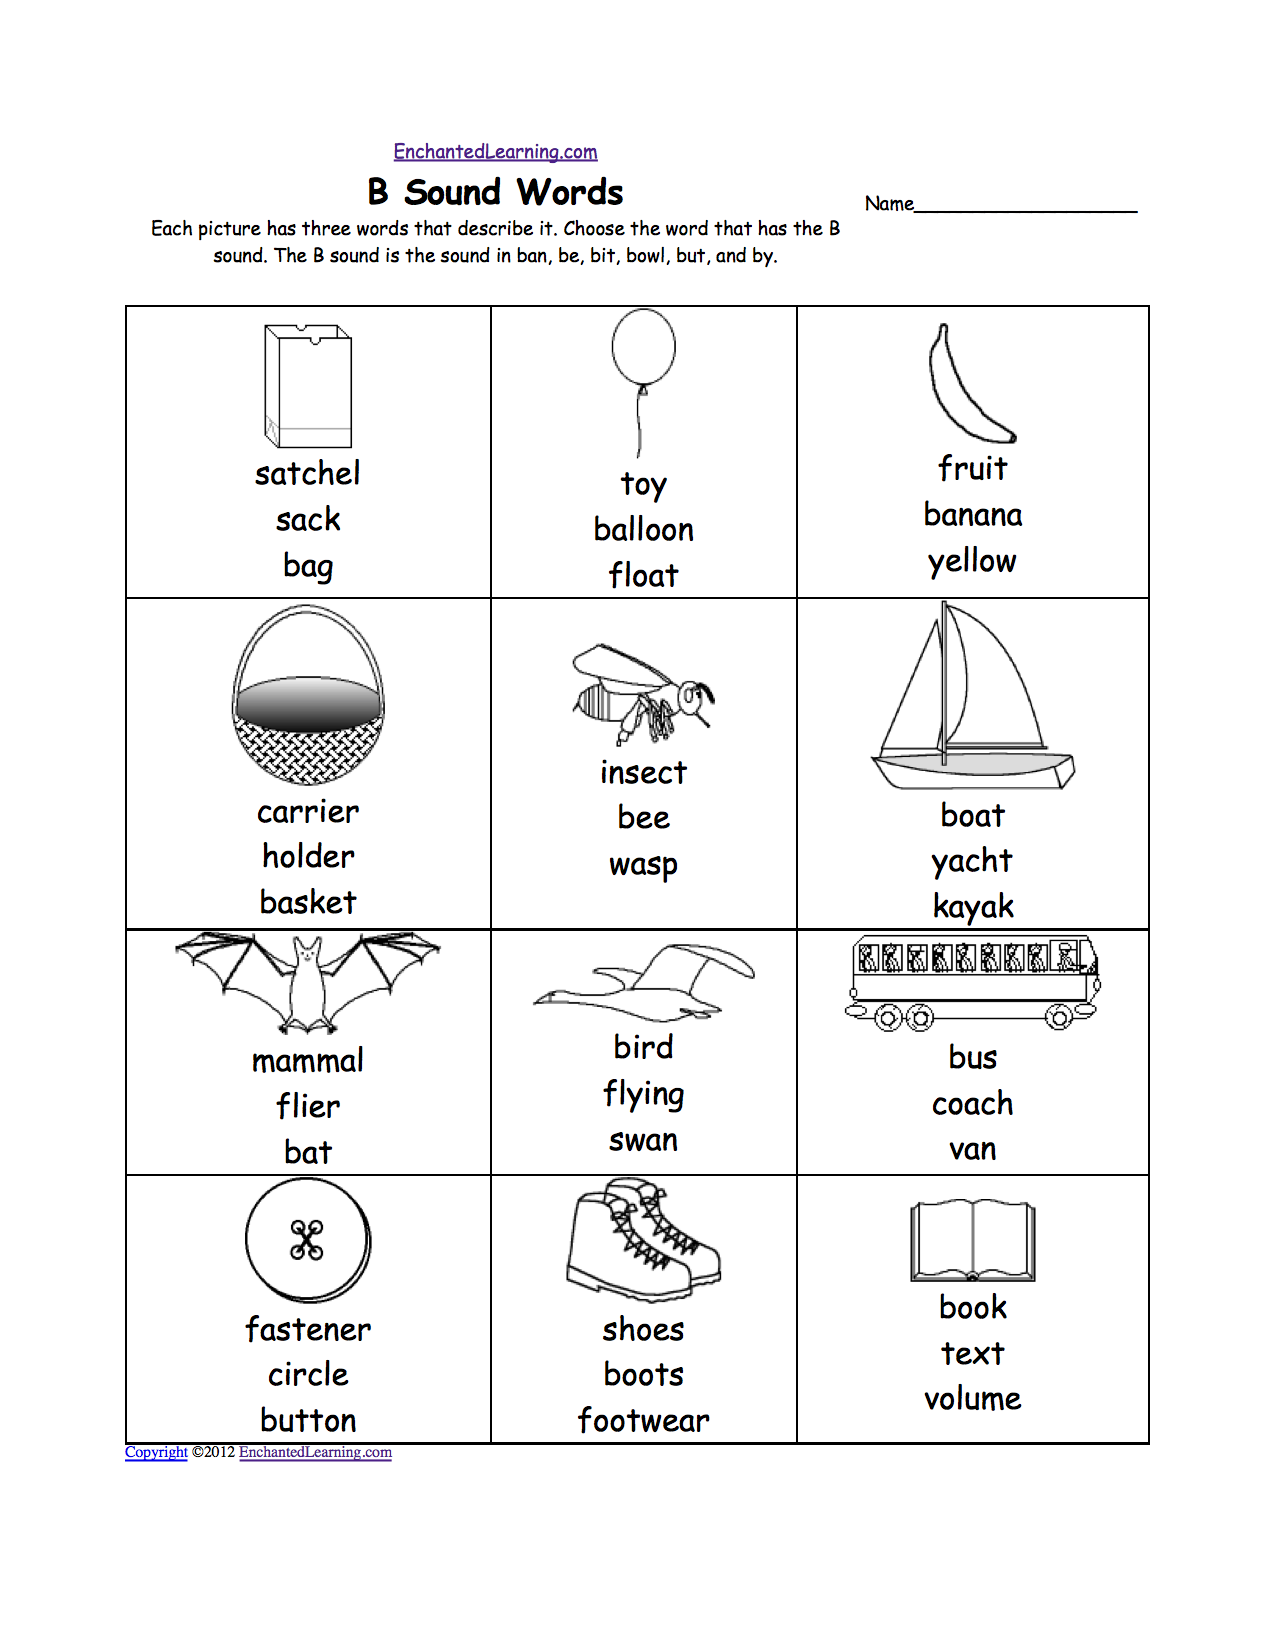 Weirdmailus  Unique Phonics Worksheets Multiple Choice Worksheets To Print  With Exquisite Quotbquot Sound Phonics Worksheet Multiple Choice Each Picture Has Three Words That Describe It Choose The Word That Has A Quotbquot Sound The Quotbquot Sound Is The Sound  With Delightful Angle Worksheets Ks Also Ch Phonics Worksheets Free In Addition Maths Addition And Subtraction Worksheets For Grade  And Low Level Reading Comprehension Worksheets As Well As Adjective Worksheet Grade  Additionally Physical Map Worksheets From Enchantedlearningcom With Weirdmailus  Exquisite Phonics Worksheets Multiple Choice Worksheets To Print  With Delightful Quotbquot Sound Phonics Worksheet Multiple Choice Each Picture Has Three Words That Describe It Choose The Word That Has A Quotbquot Sound The Quotbquot Sound Is The Sound  And Unique Angle Worksheets Ks Also Ch Phonics Worksheets Free In Addition Maths Addition And Subtraction Worksheets For Grade  From Enchantedlearningcom